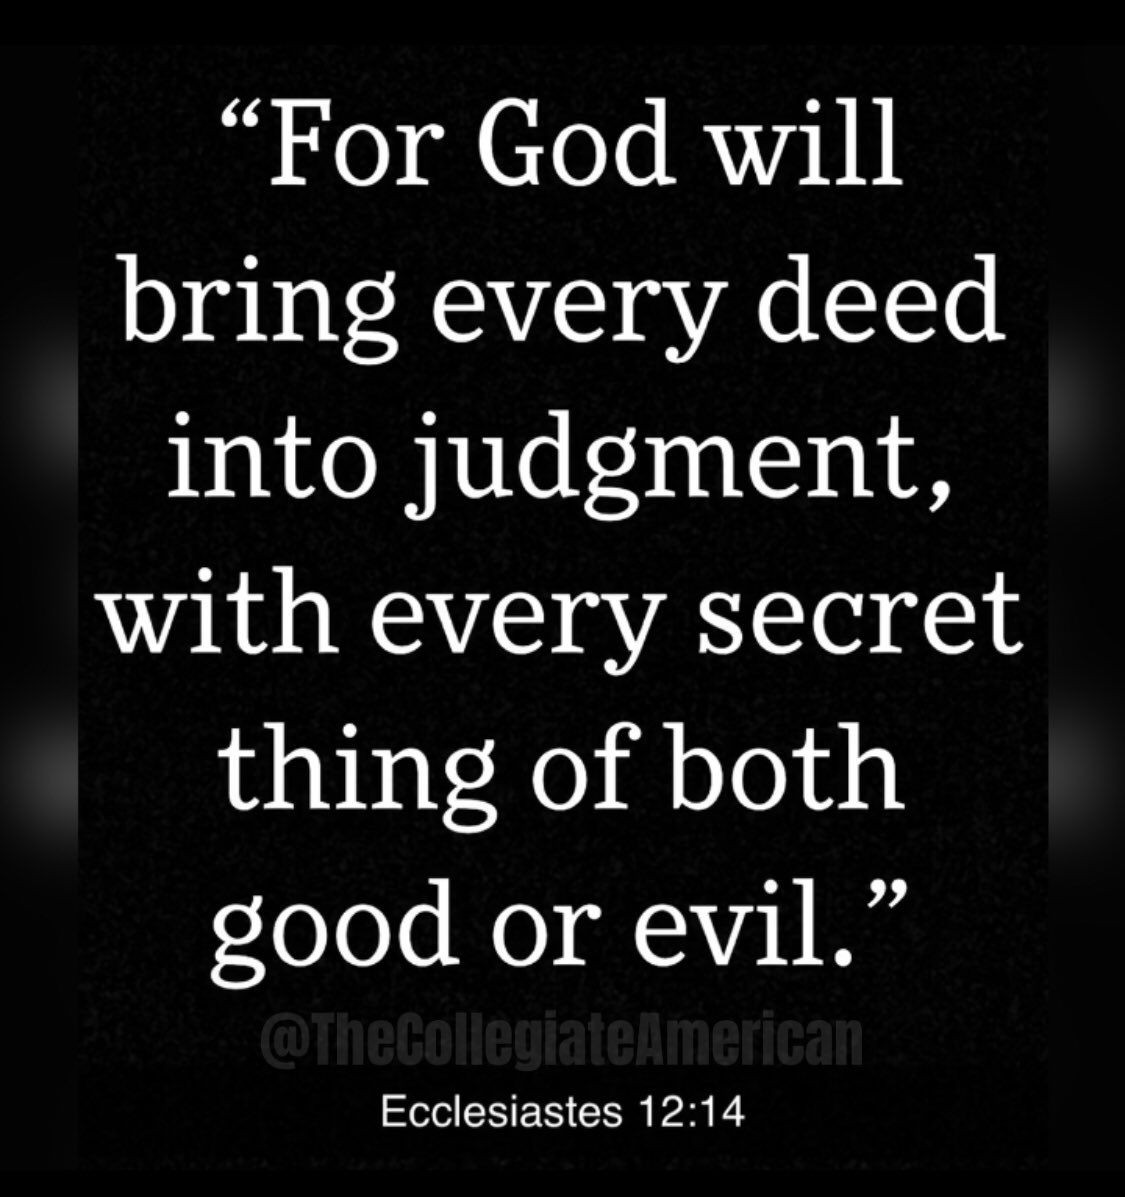 """""""For God will bring every deed into judgement, with every secret thing of both good or evil.""""  ~ Ecclesiastes 12:14 #ExposeTheDeepState #DrainTheSwamp #Revelations #MAGA"""